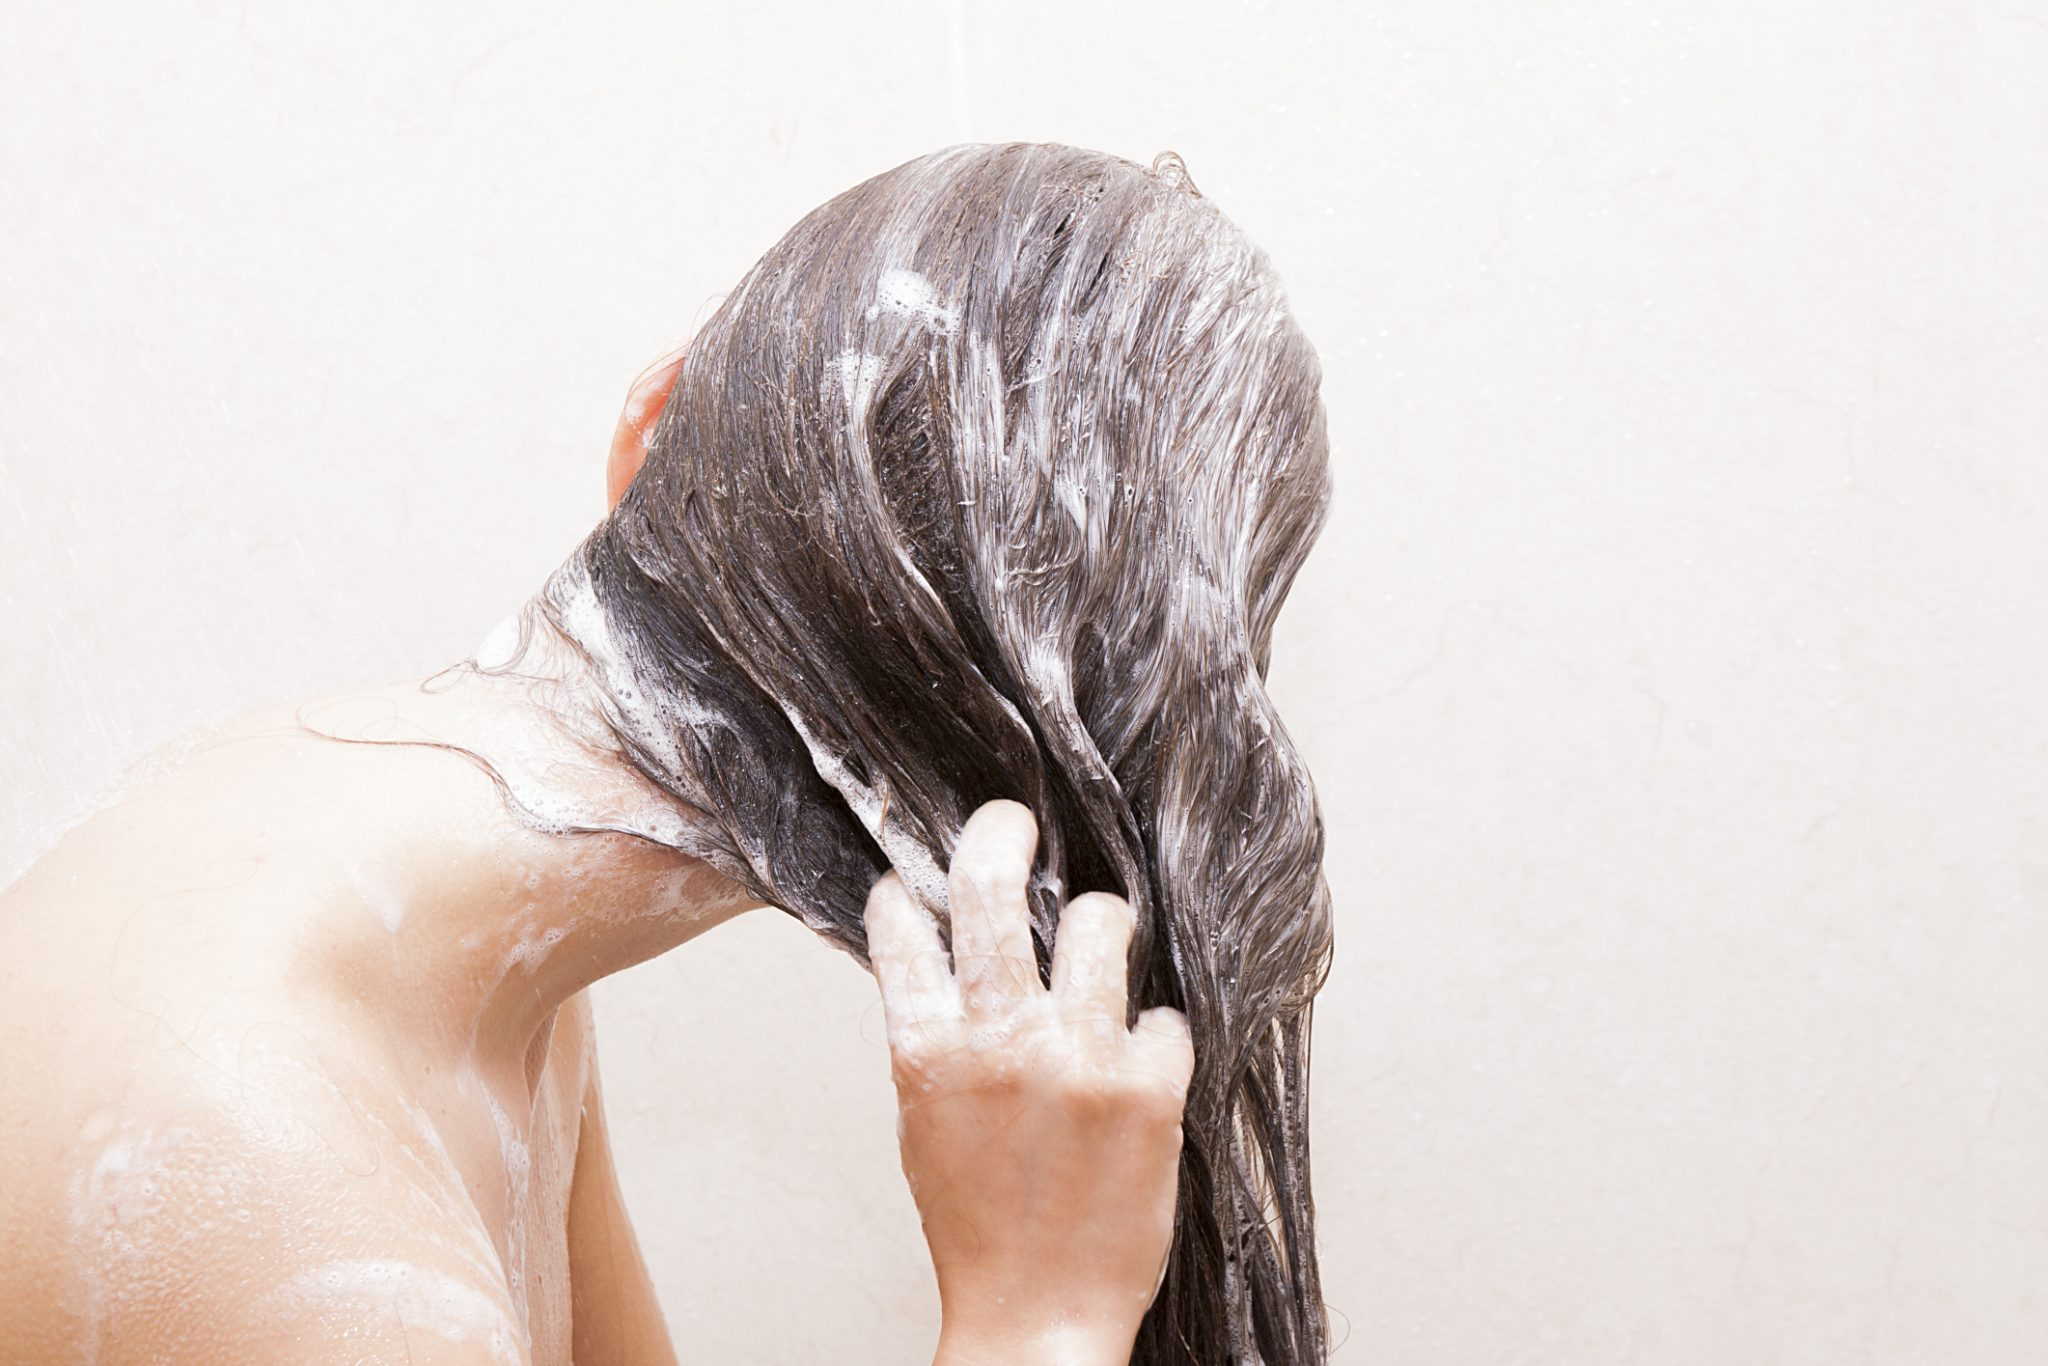 Washing Hair; how often should you wash your hair